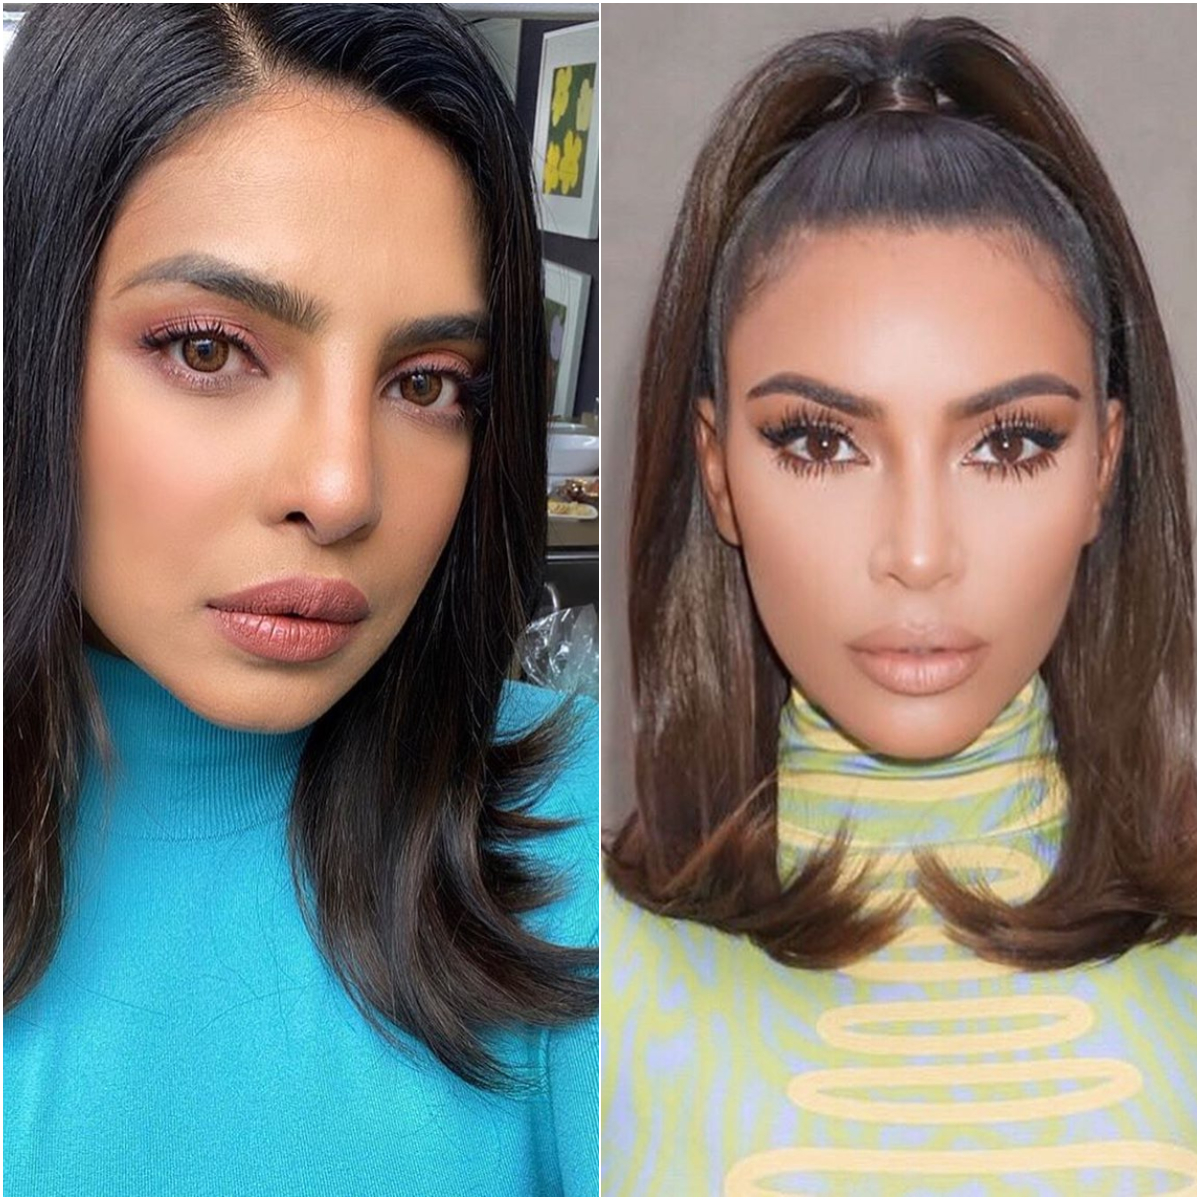 Priyanka Chopra to Kim Kardashian: THIS '90s hair trend is making a comeback & you need to try it asap